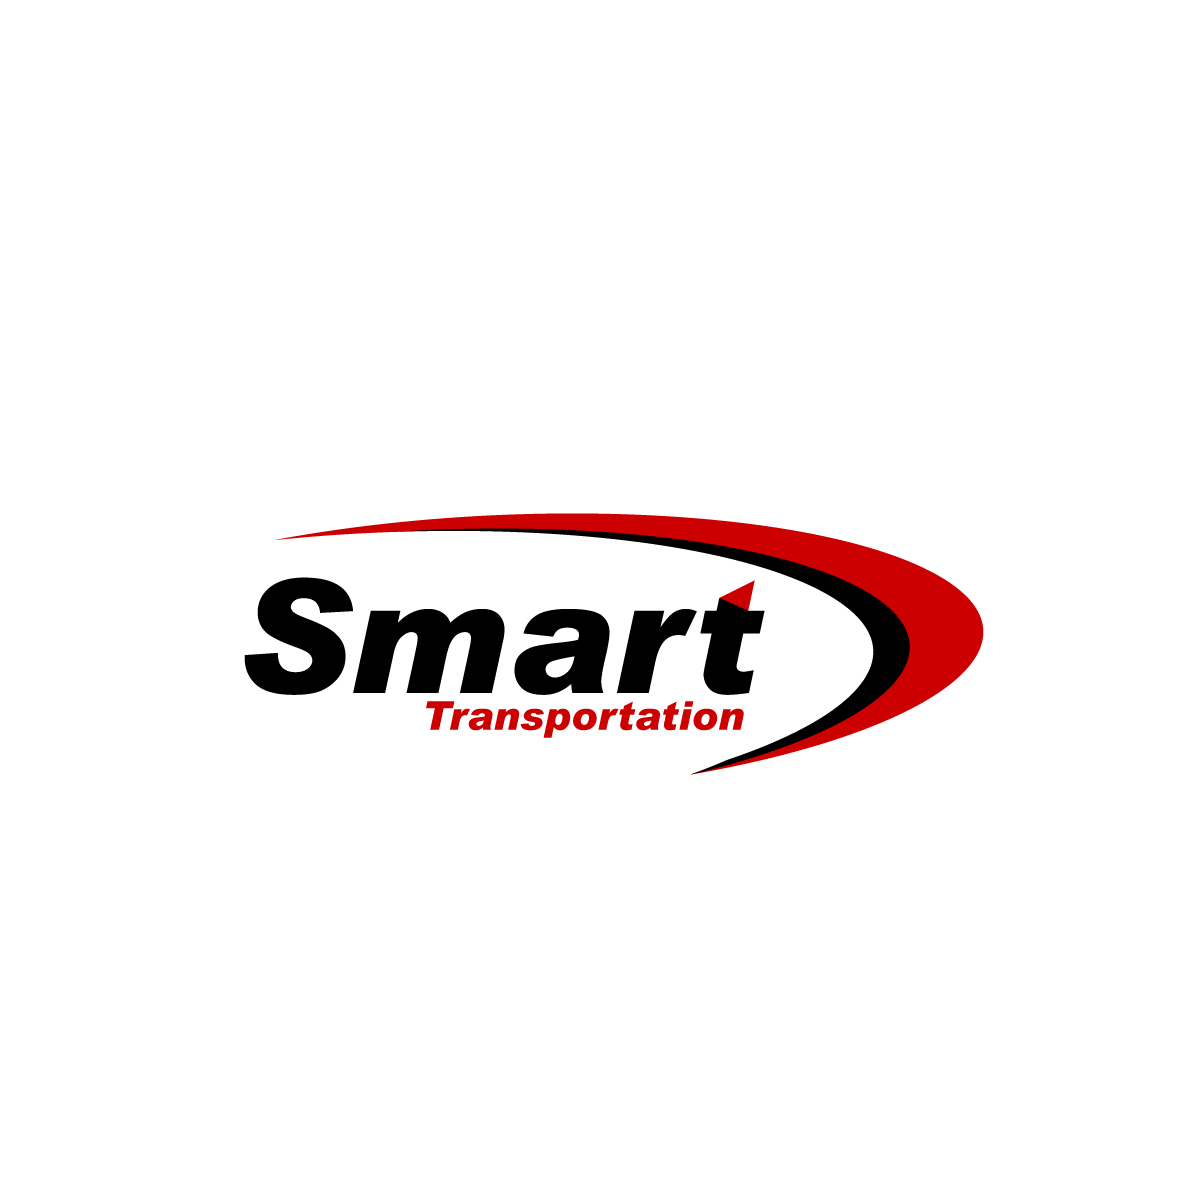 Logo Design by pixdesign - Entry No. 112 in the Logo Design Contest Imaginative Logo Design for Smart Transportation.